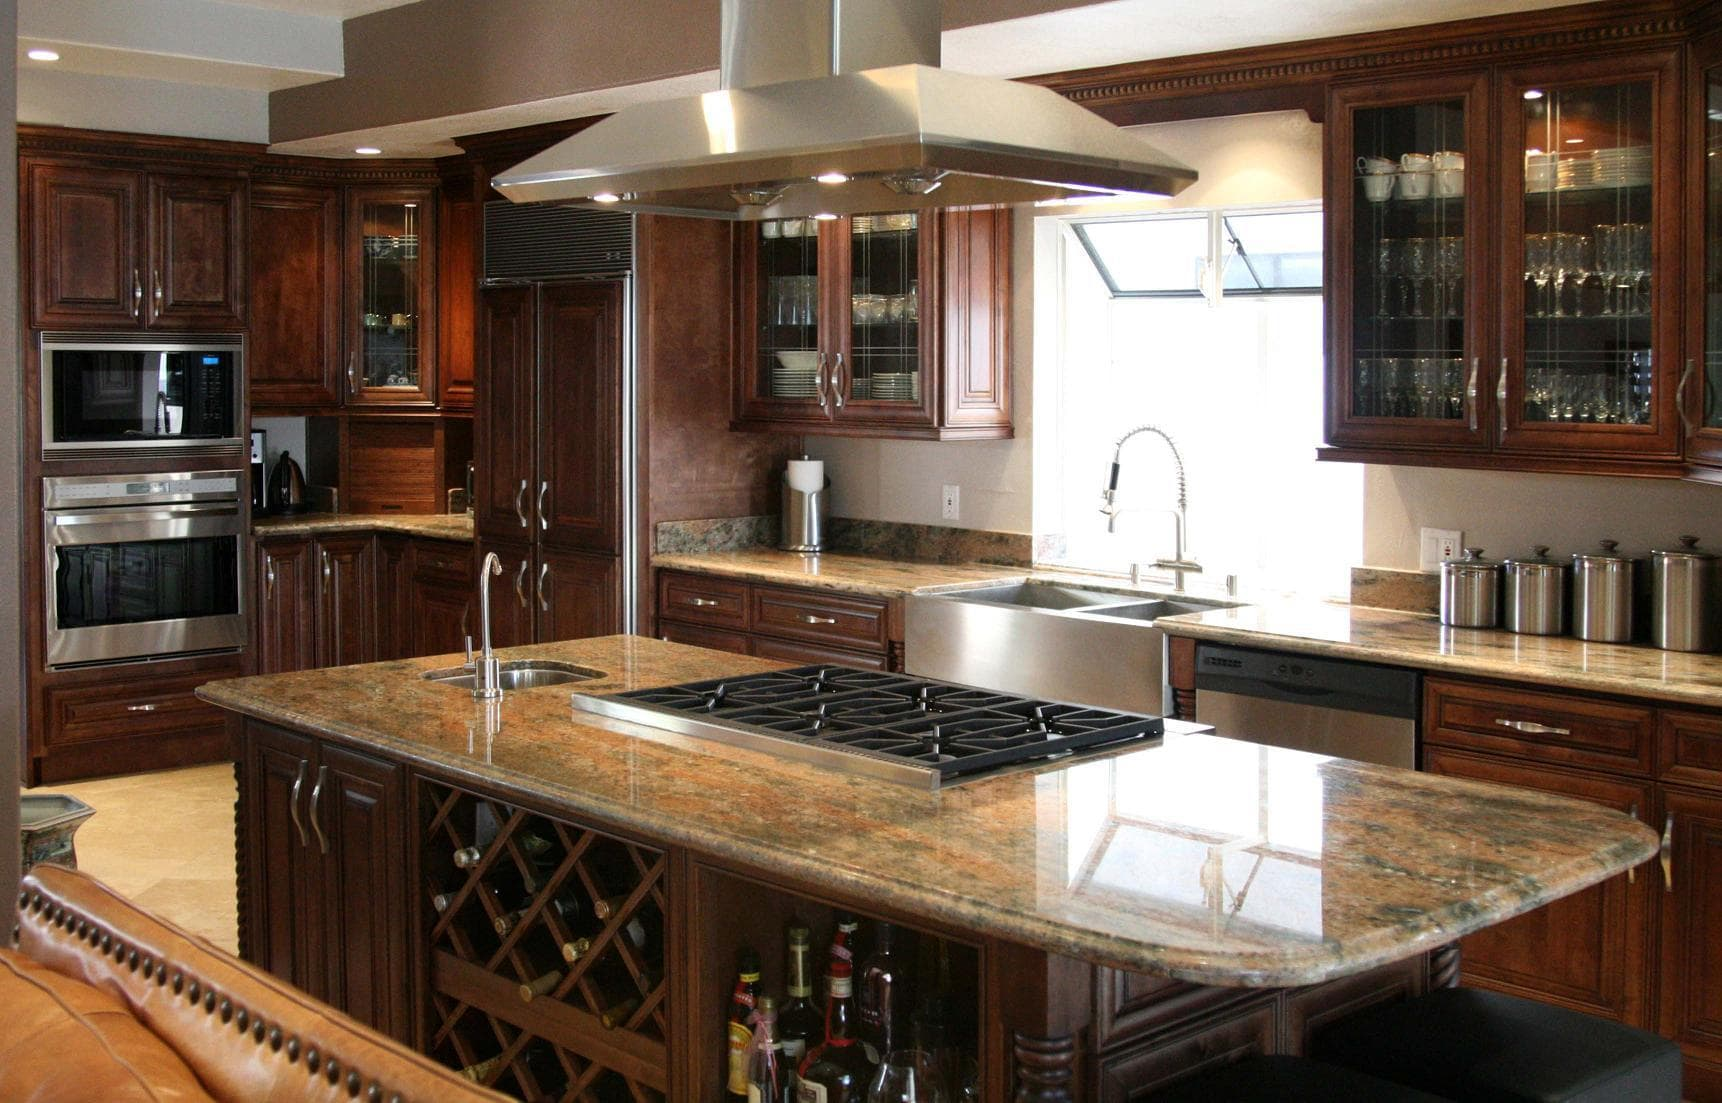 Kitchen Remodeling and Refacing in CT | Top Rated 5 Star Contractor